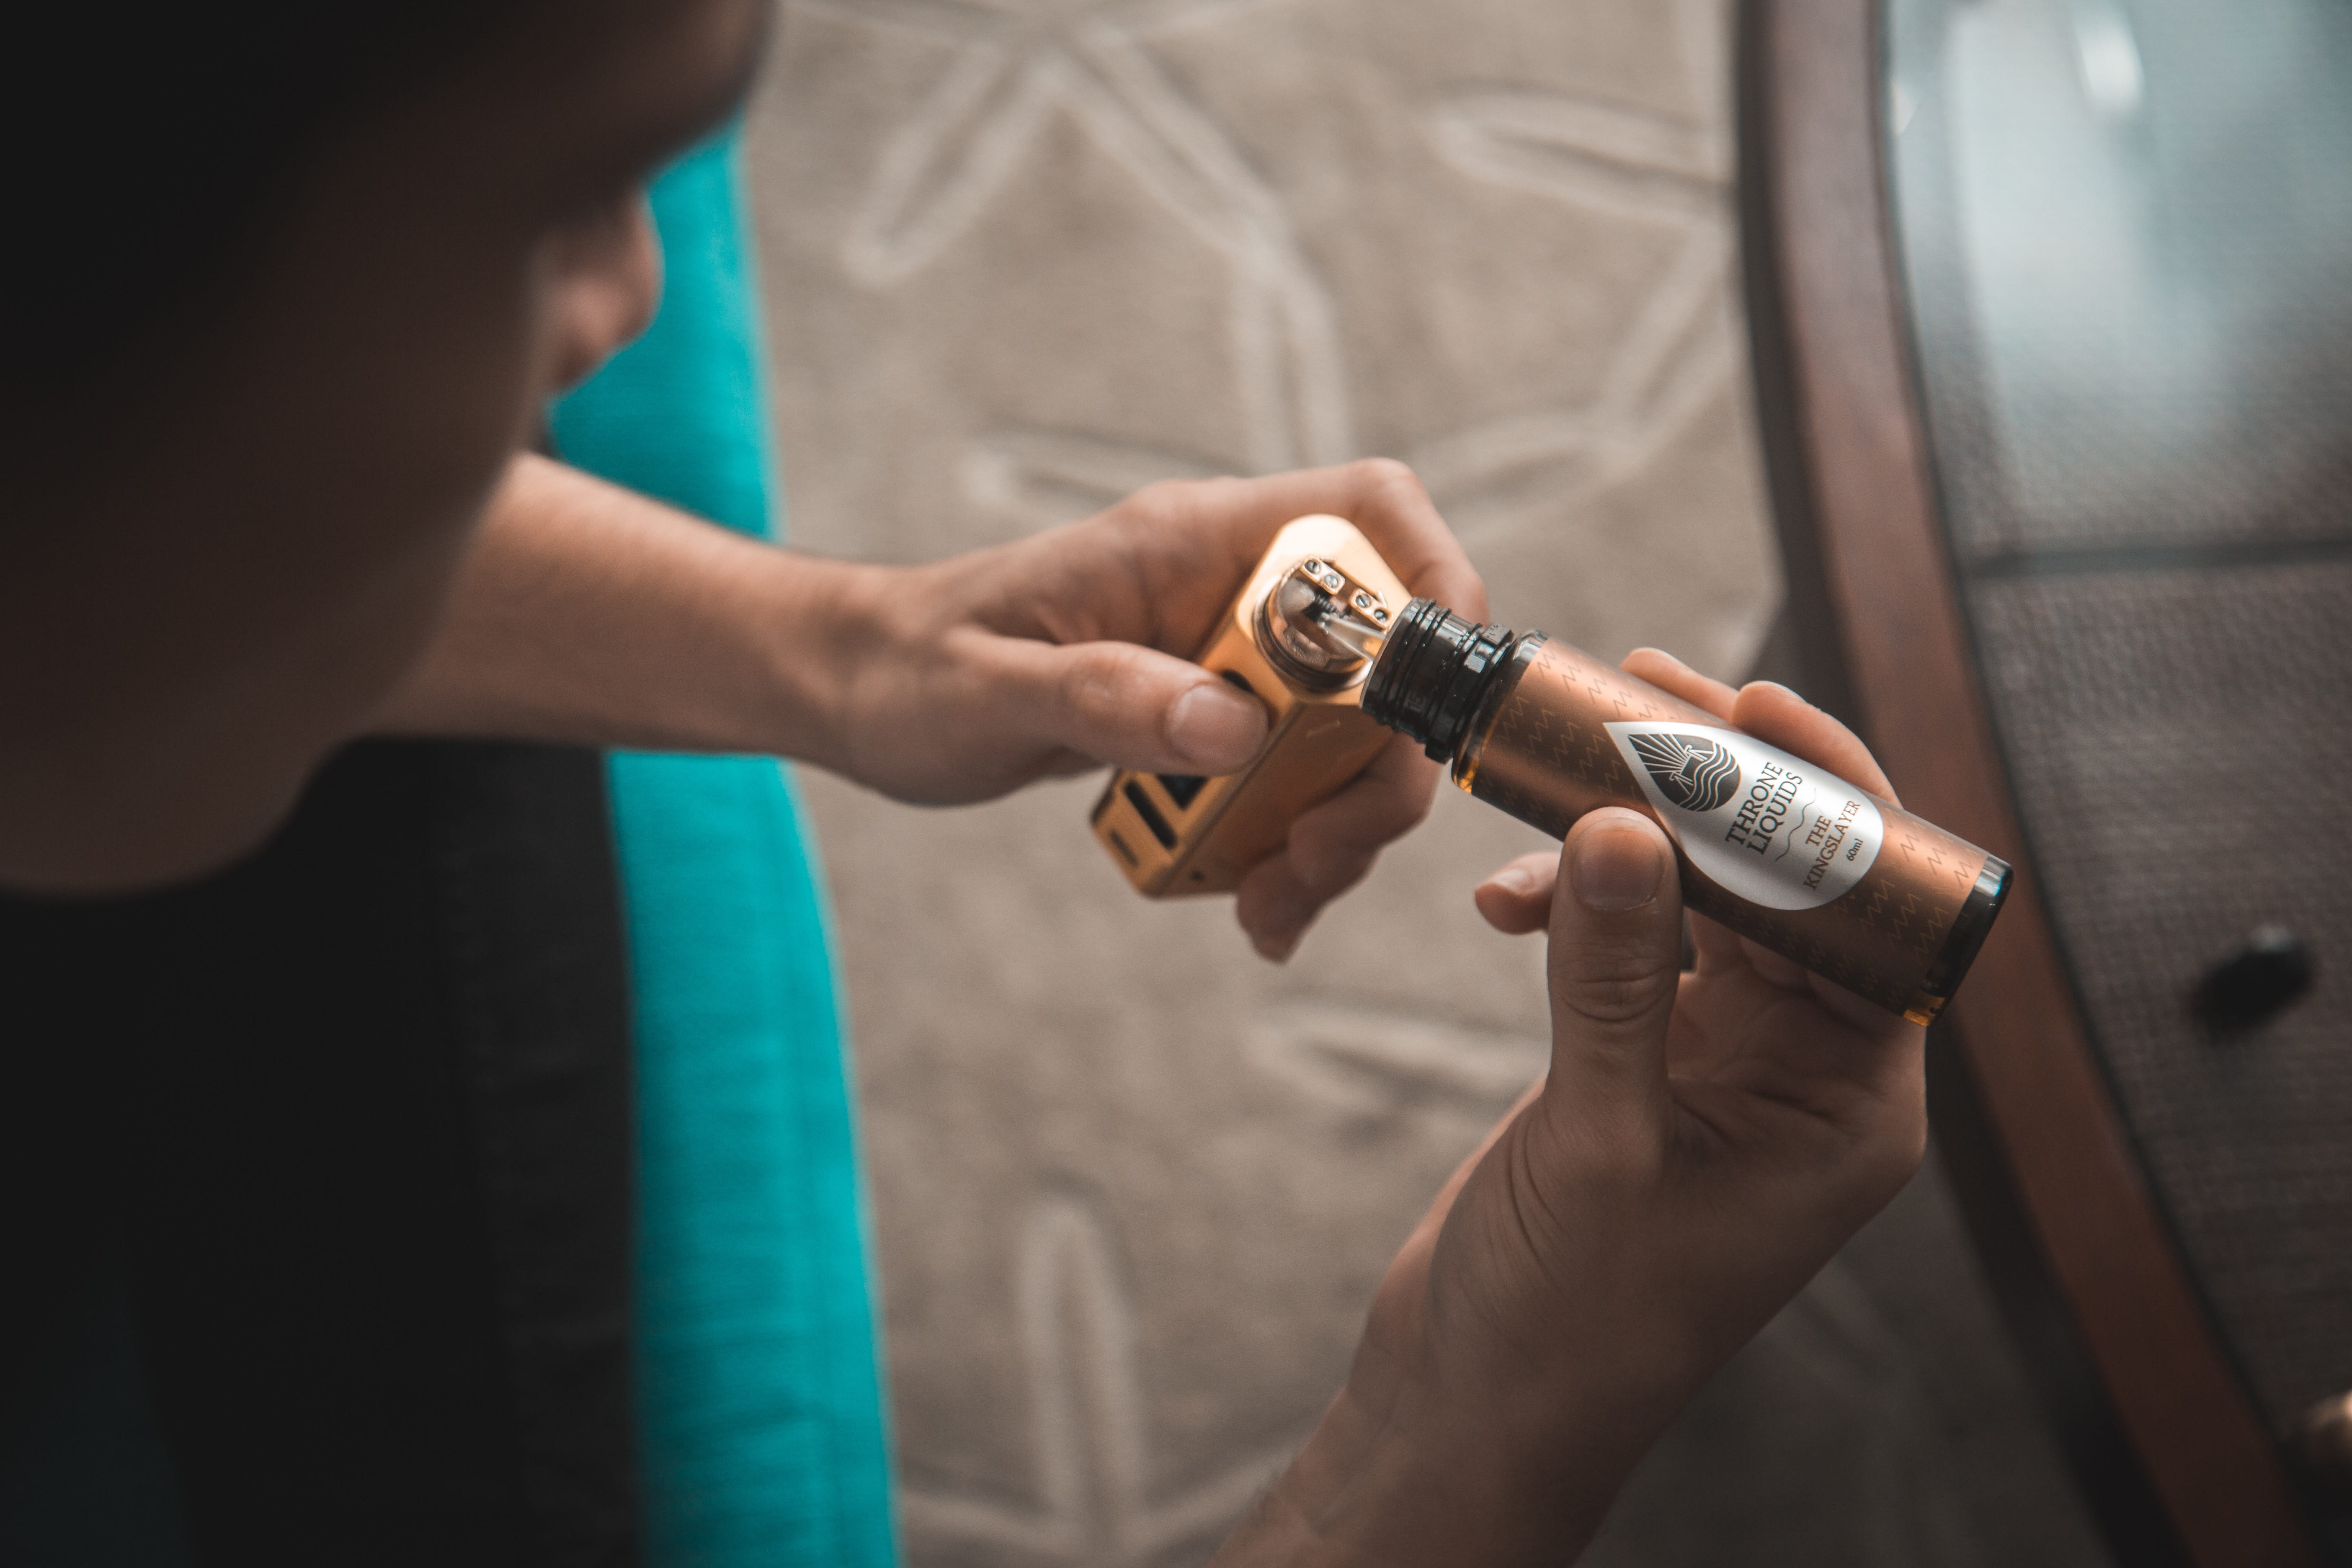 Respiratory Illnesses from Vaping are Widespread, Warns CDC